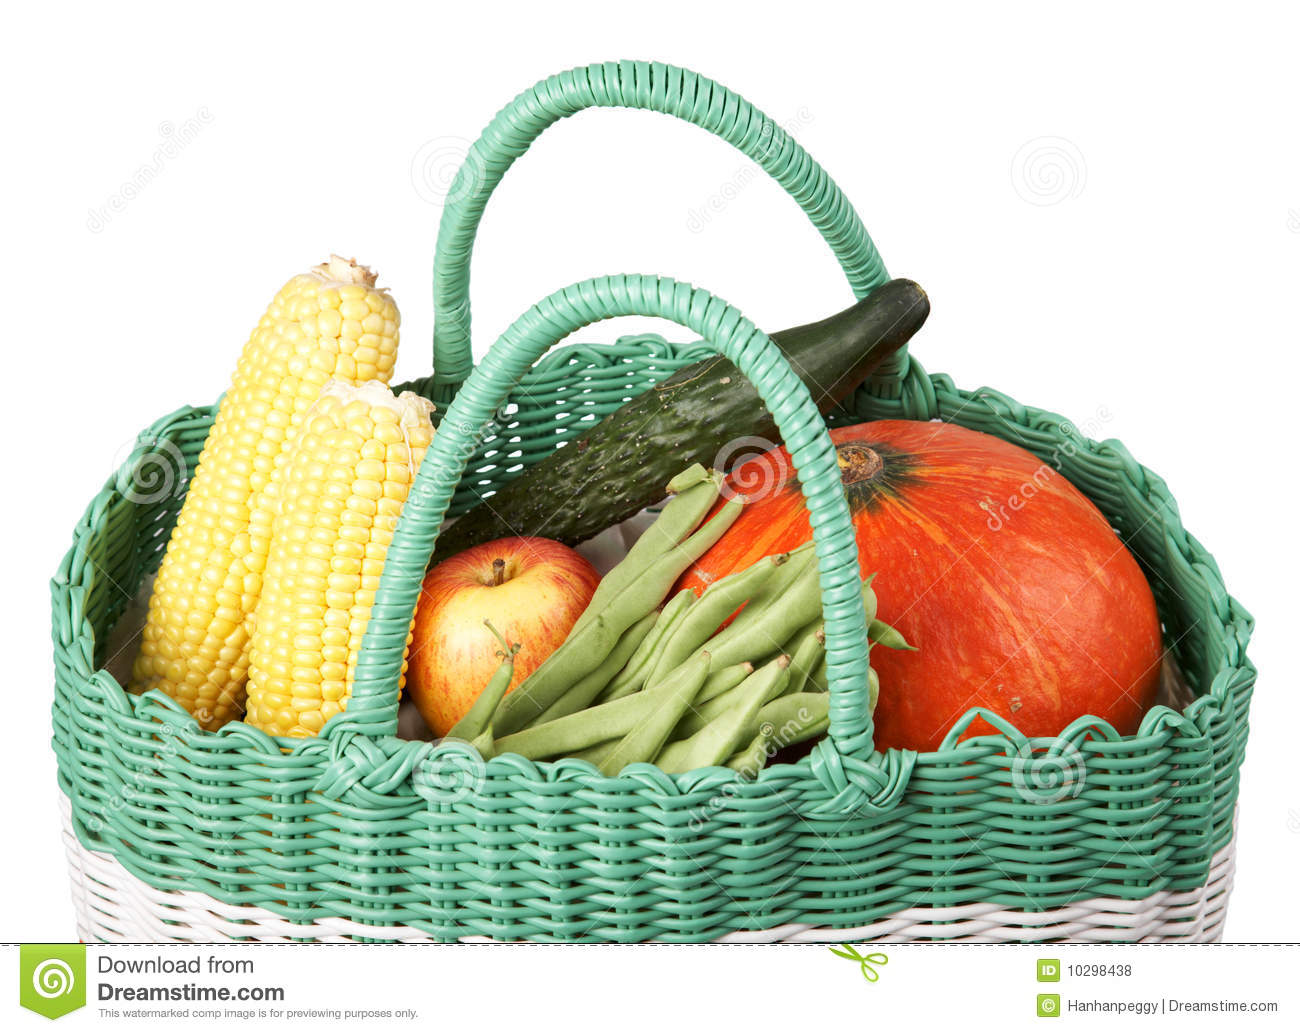 Shopping Vegetable Royalty Free Stock Photos - Image: 10298438